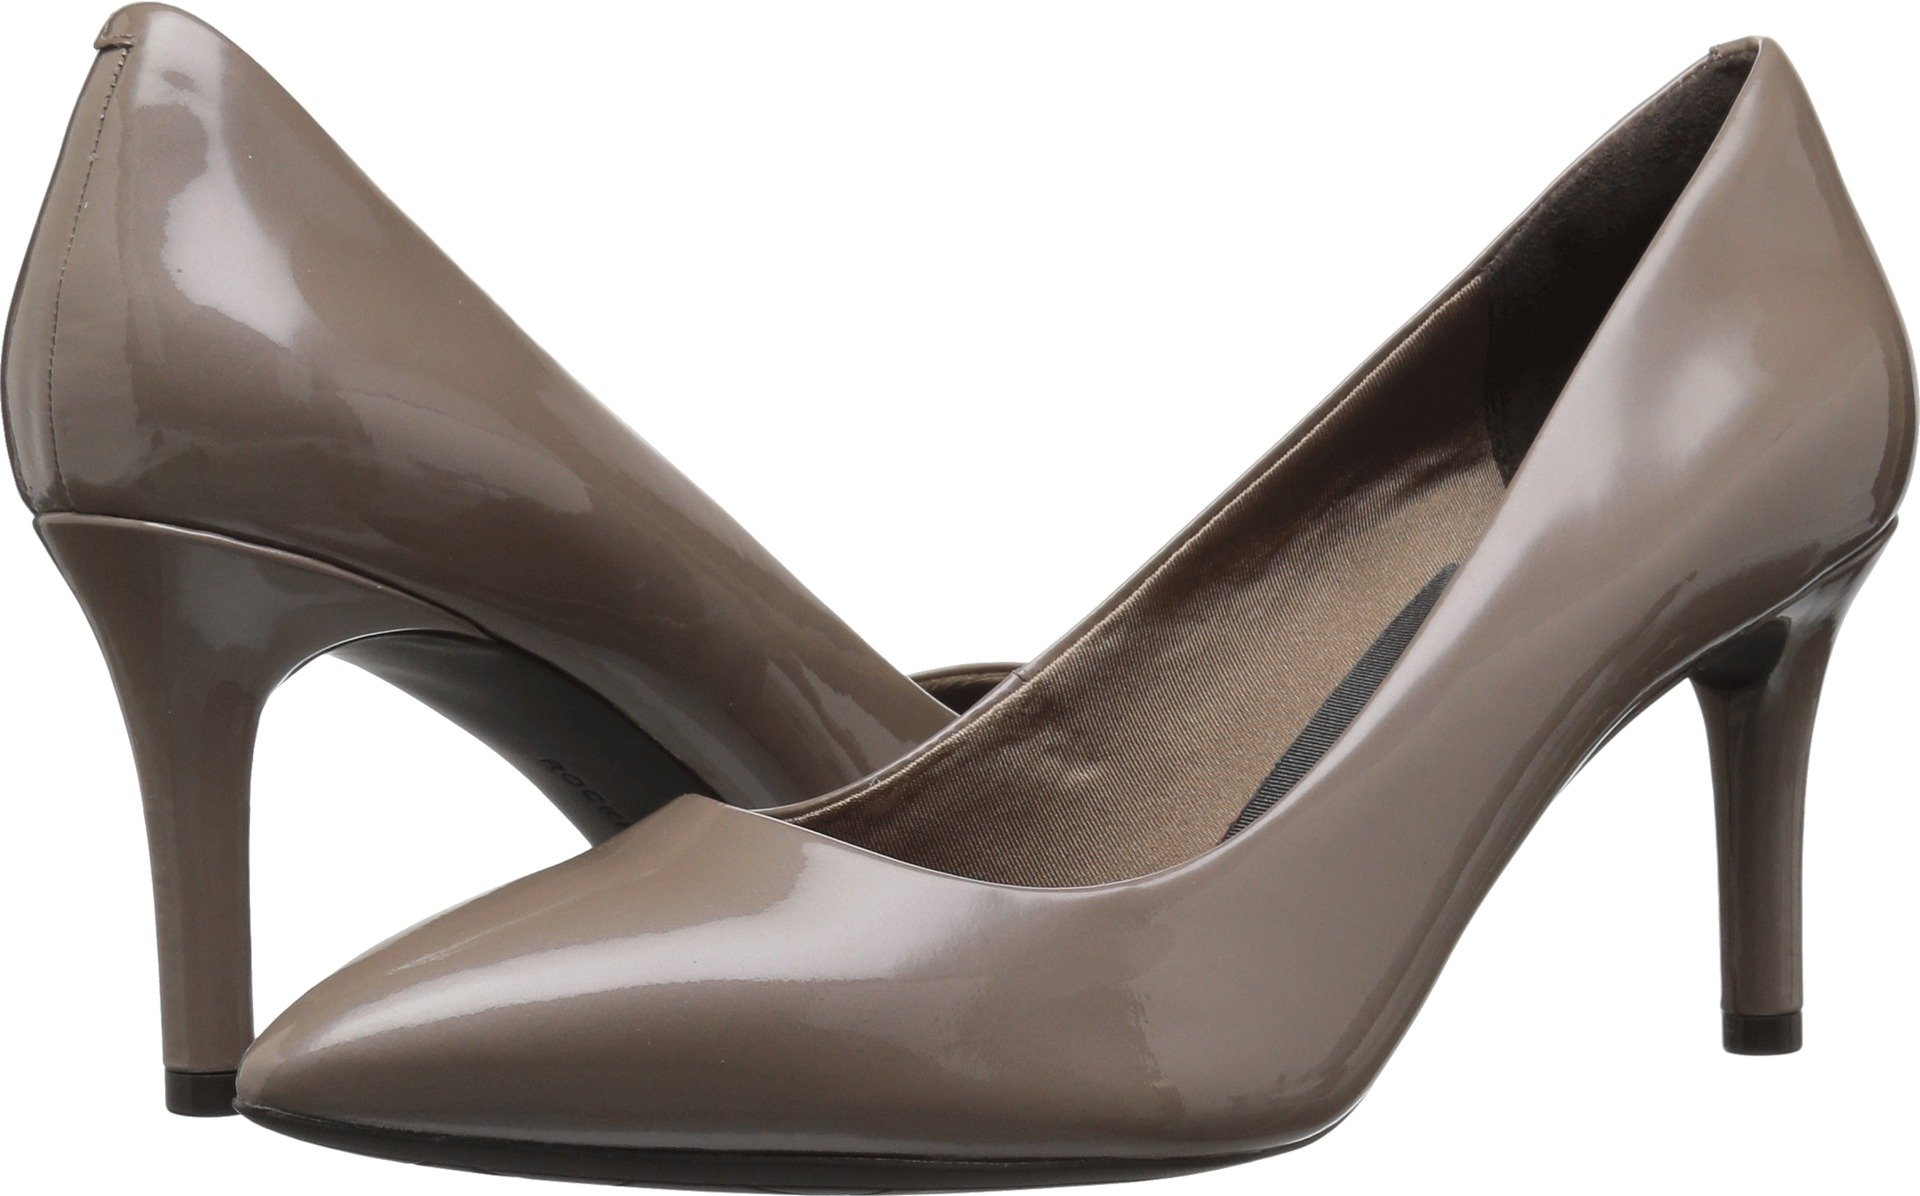 Rockport Women's Total Motion 75mm Pointy Dress Pump, Taupe Grey Patent, 8 W US